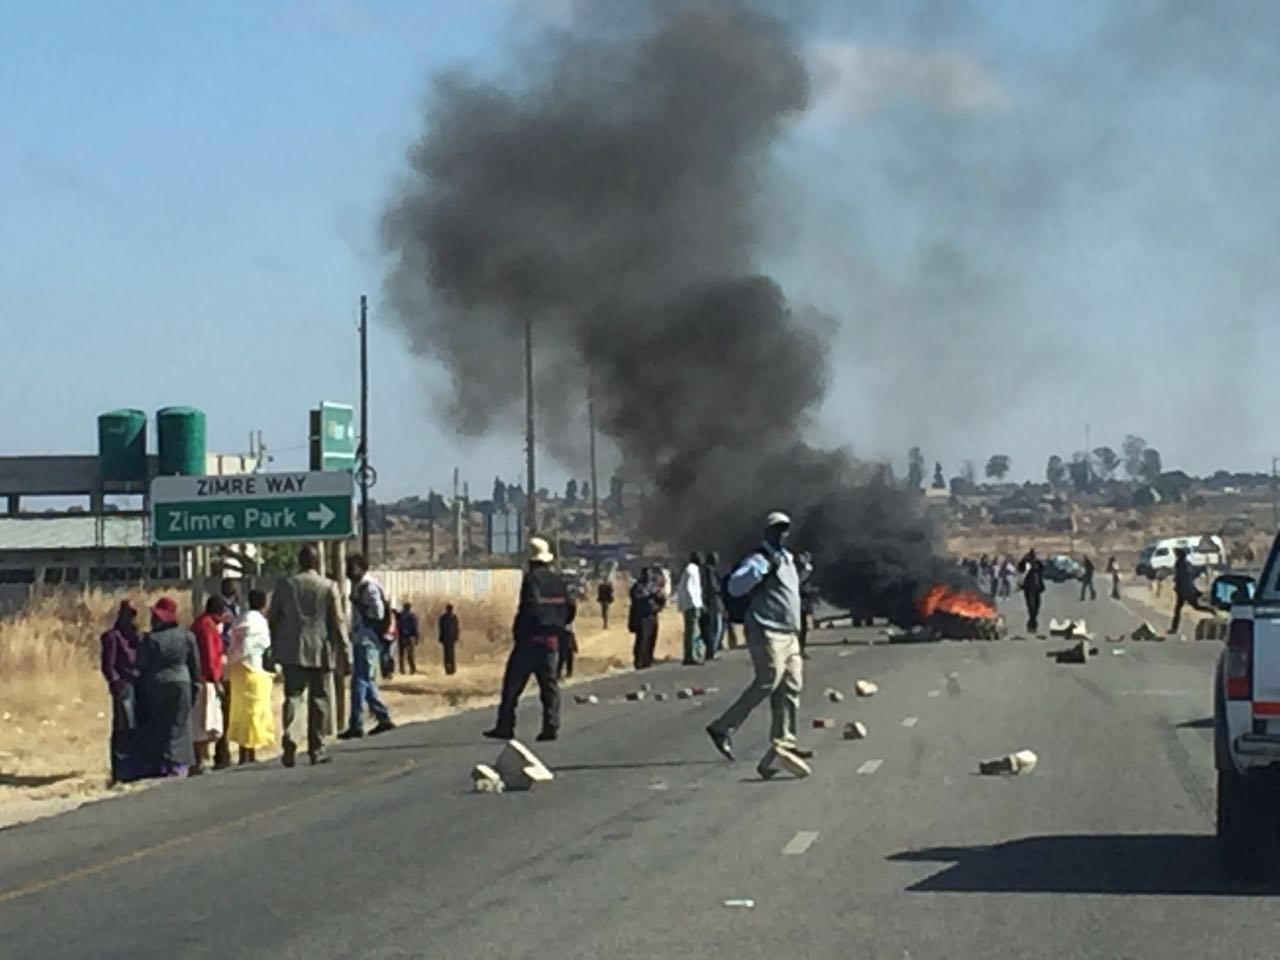 Kombi protests in Harare